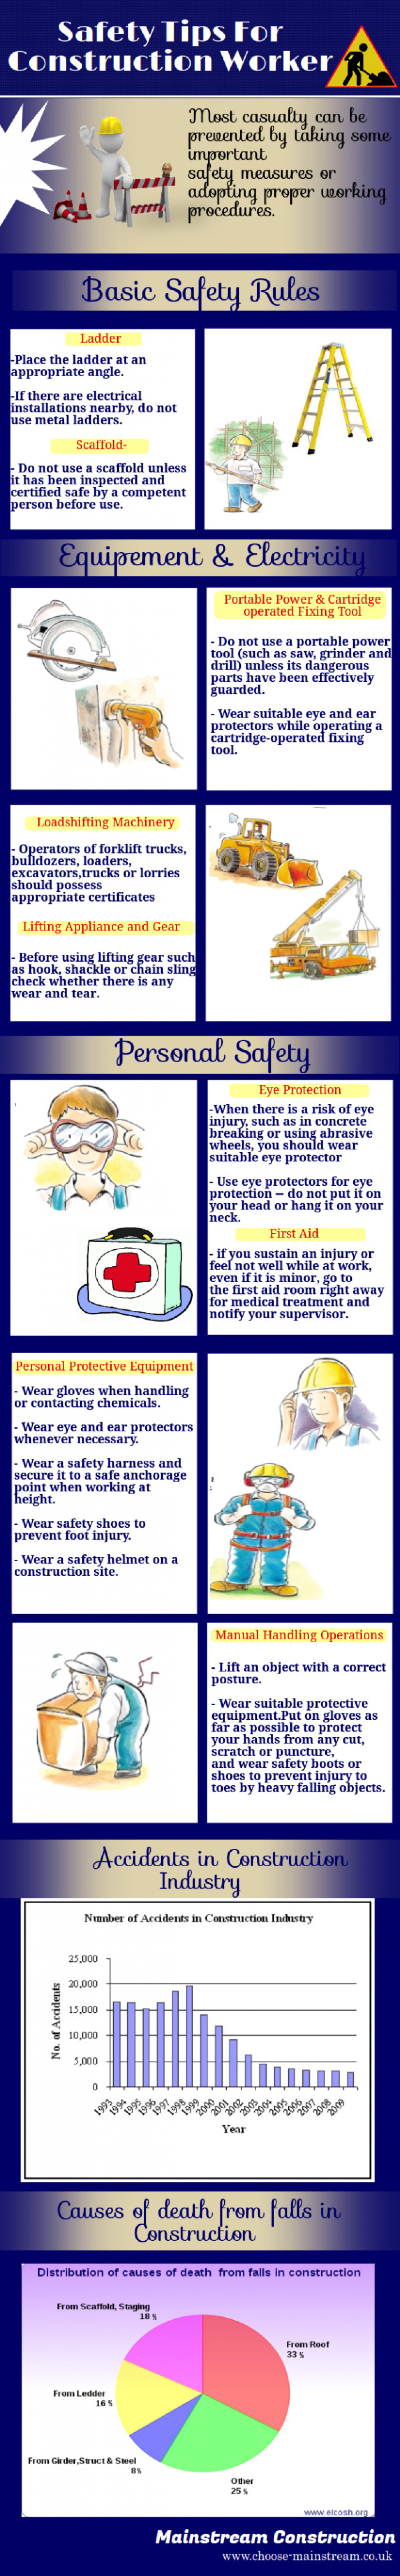 Safety Tips for Construction Worker Infographic